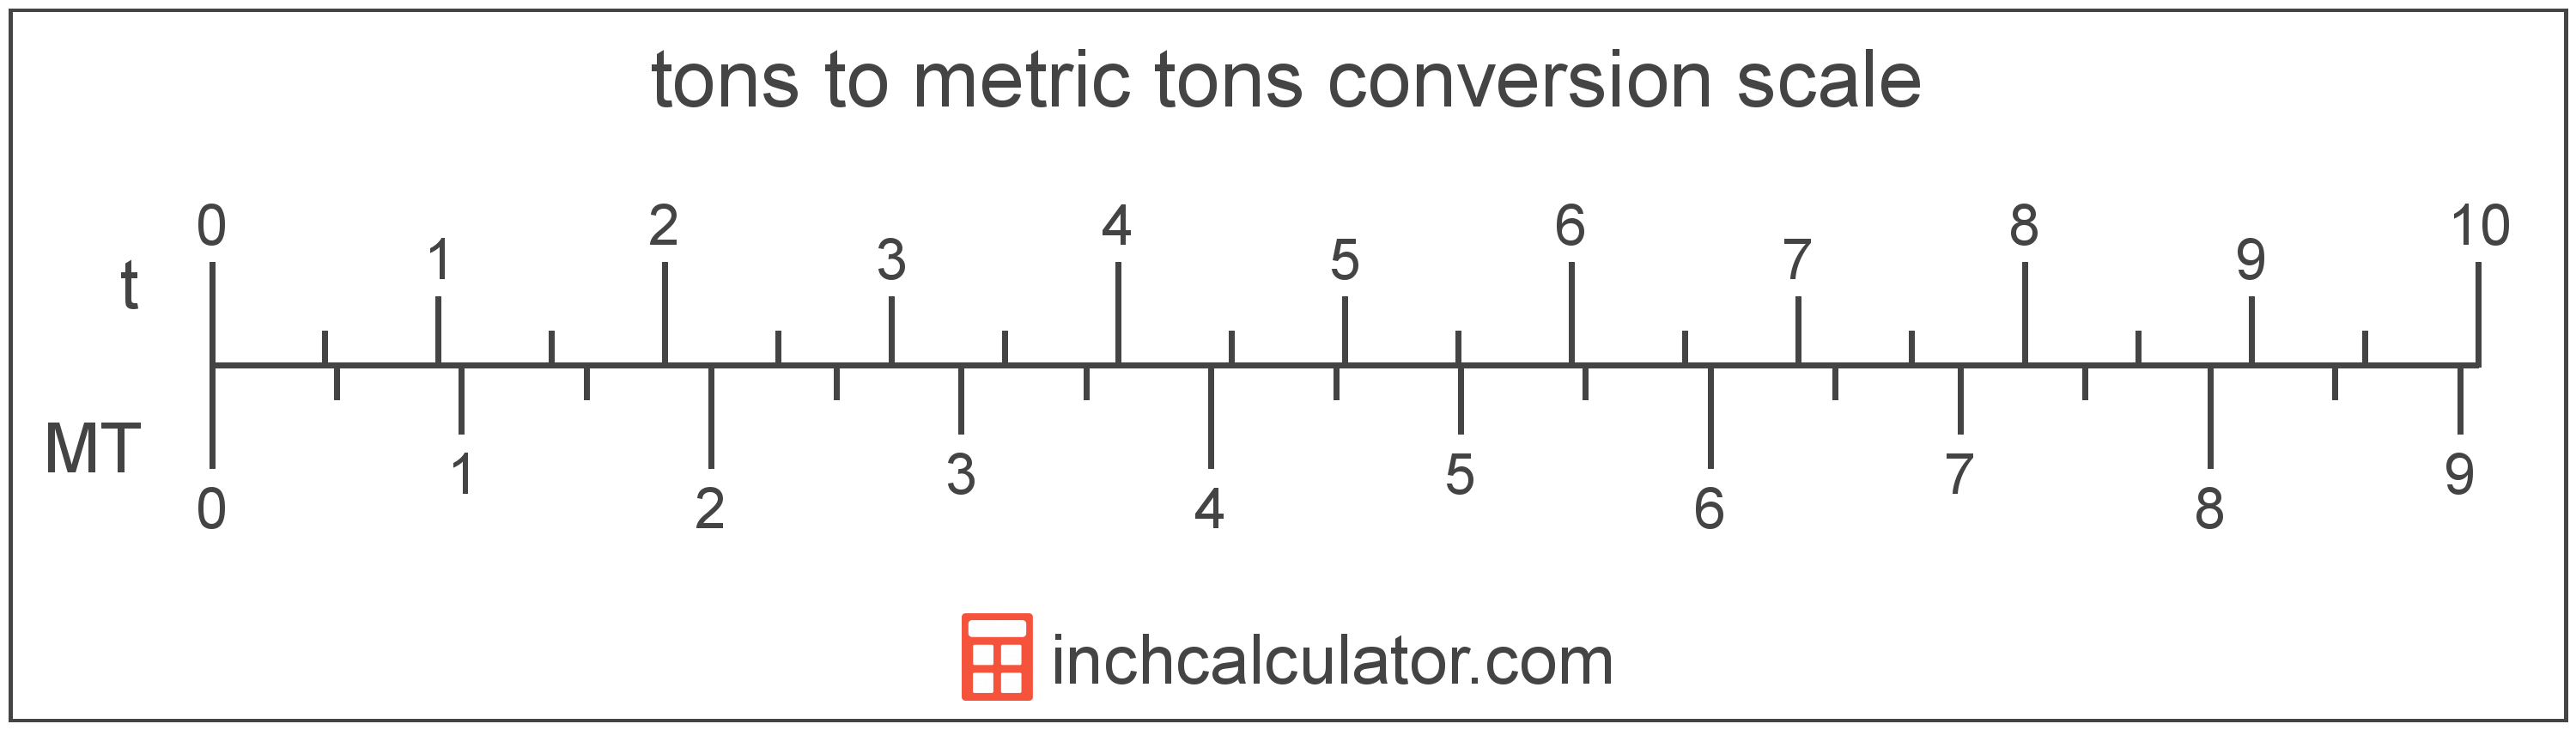 conversion scale showing tons and equivalent metric tons weight values